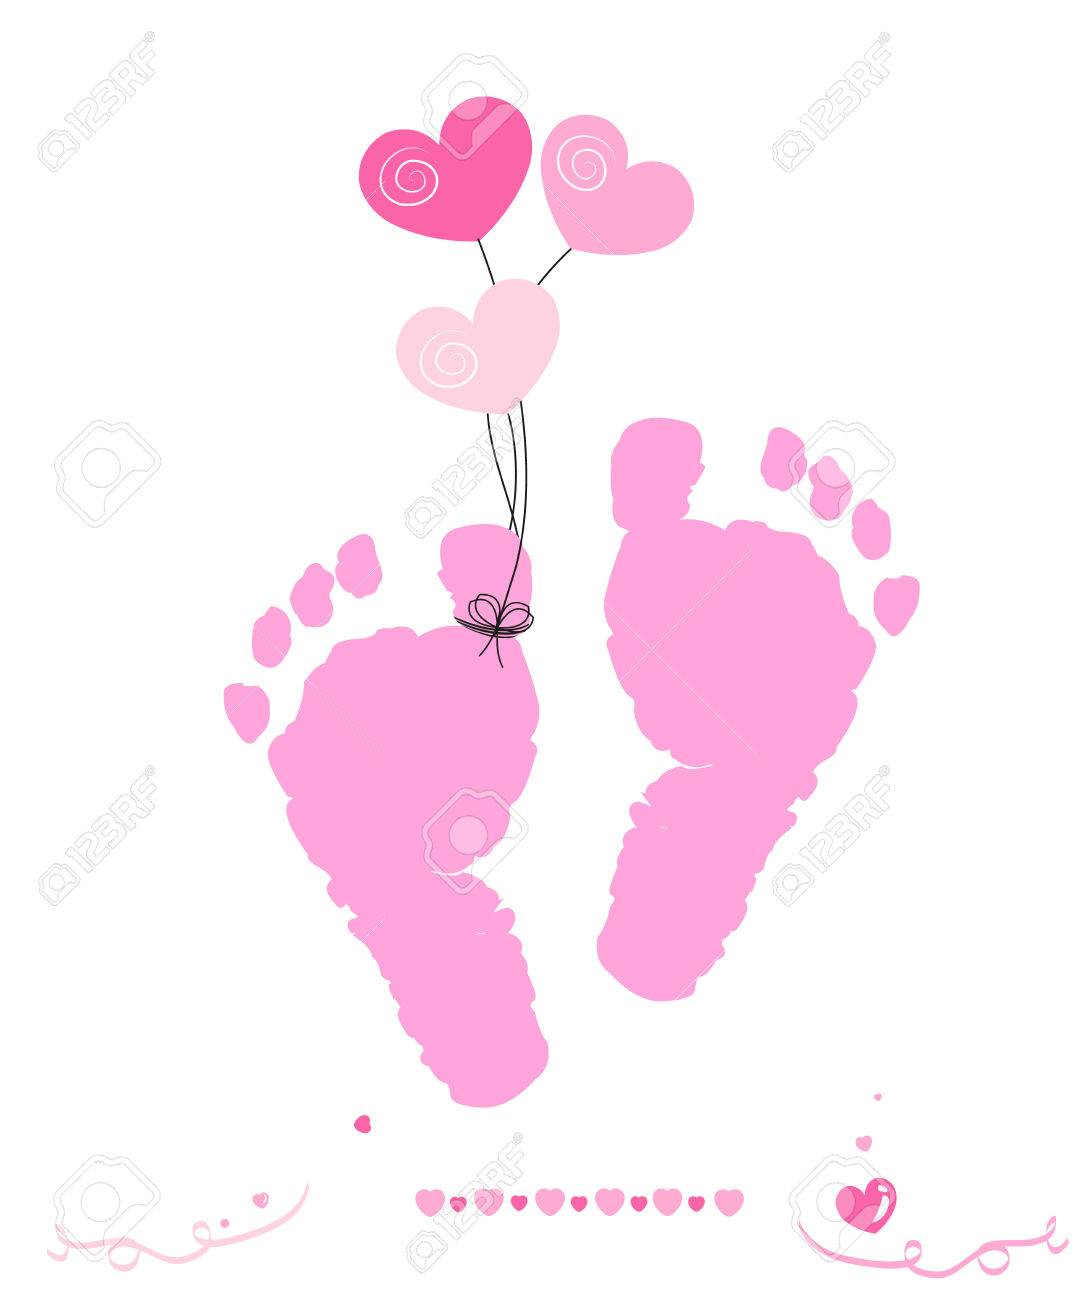 baby girl greeting card vector foot prints with hearts balloon